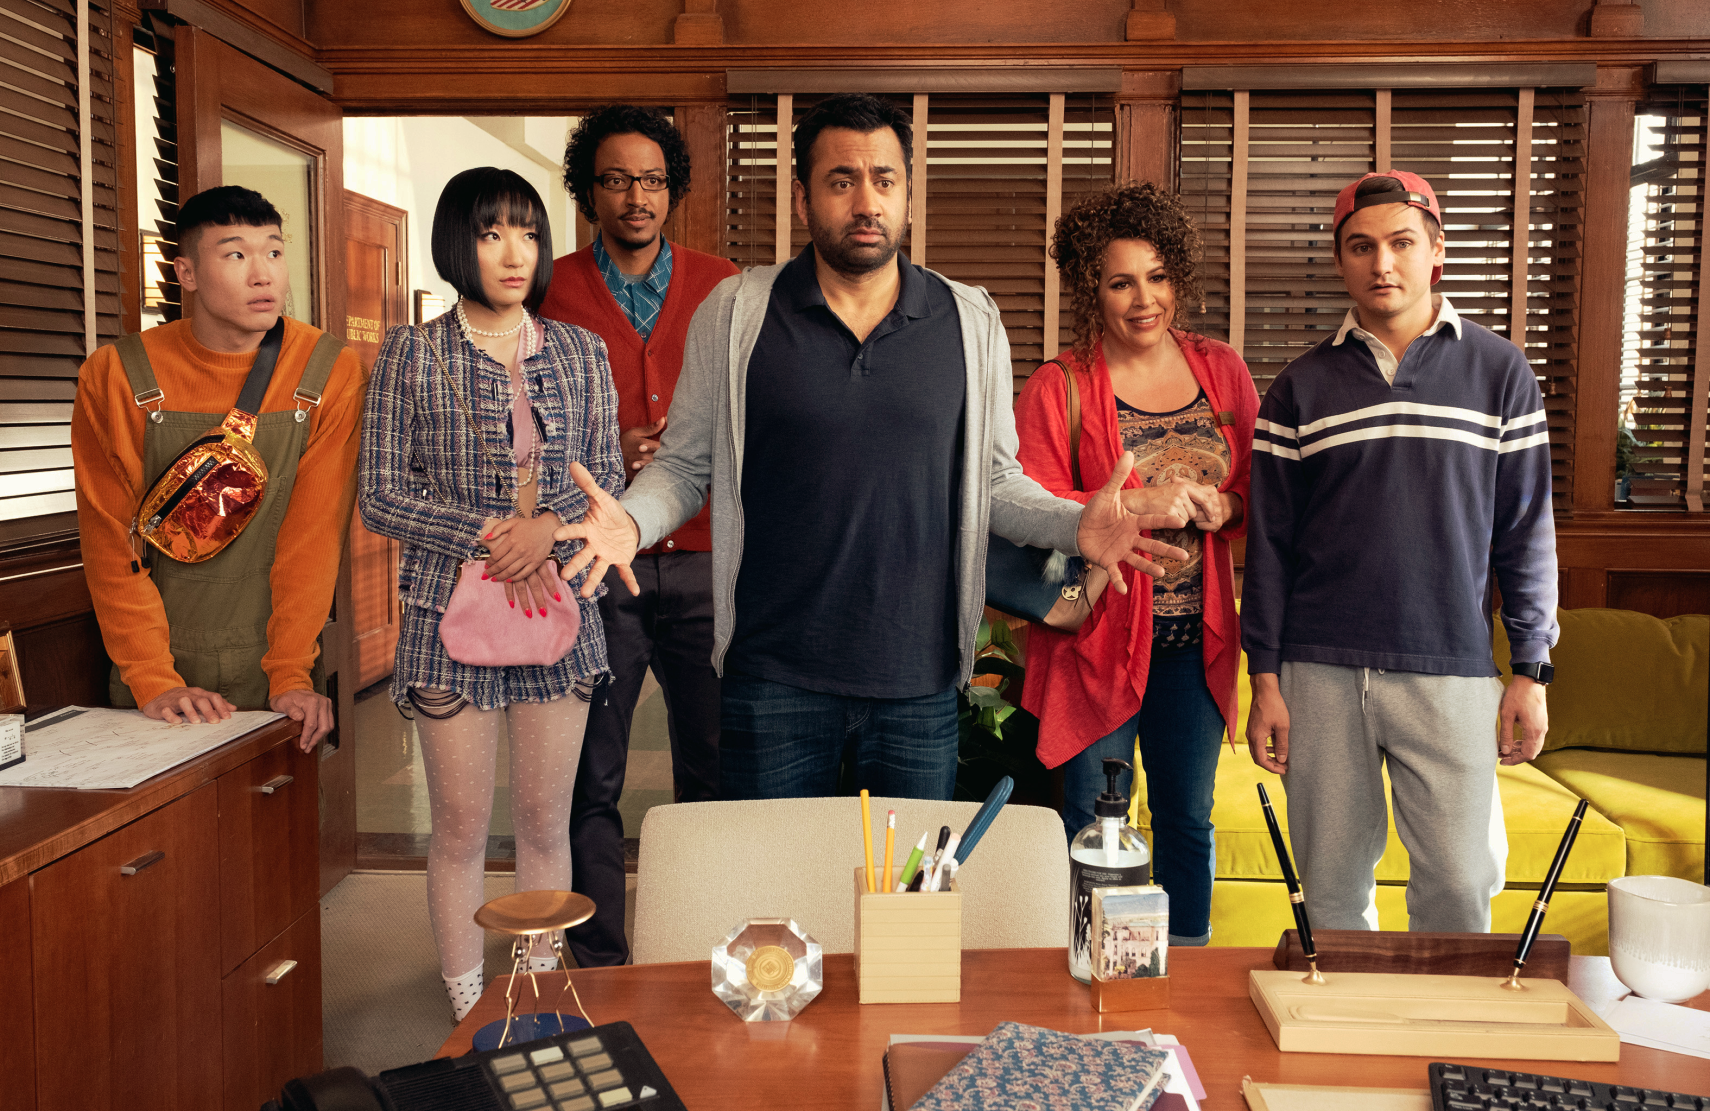 Kal Penn (center) stars in Sunnyside along with Joel Kim Booster, Poppy Liu, Samba Schutte, Diana Marie Riva, and Moses Storm. (Colleen Hayes/NBC)